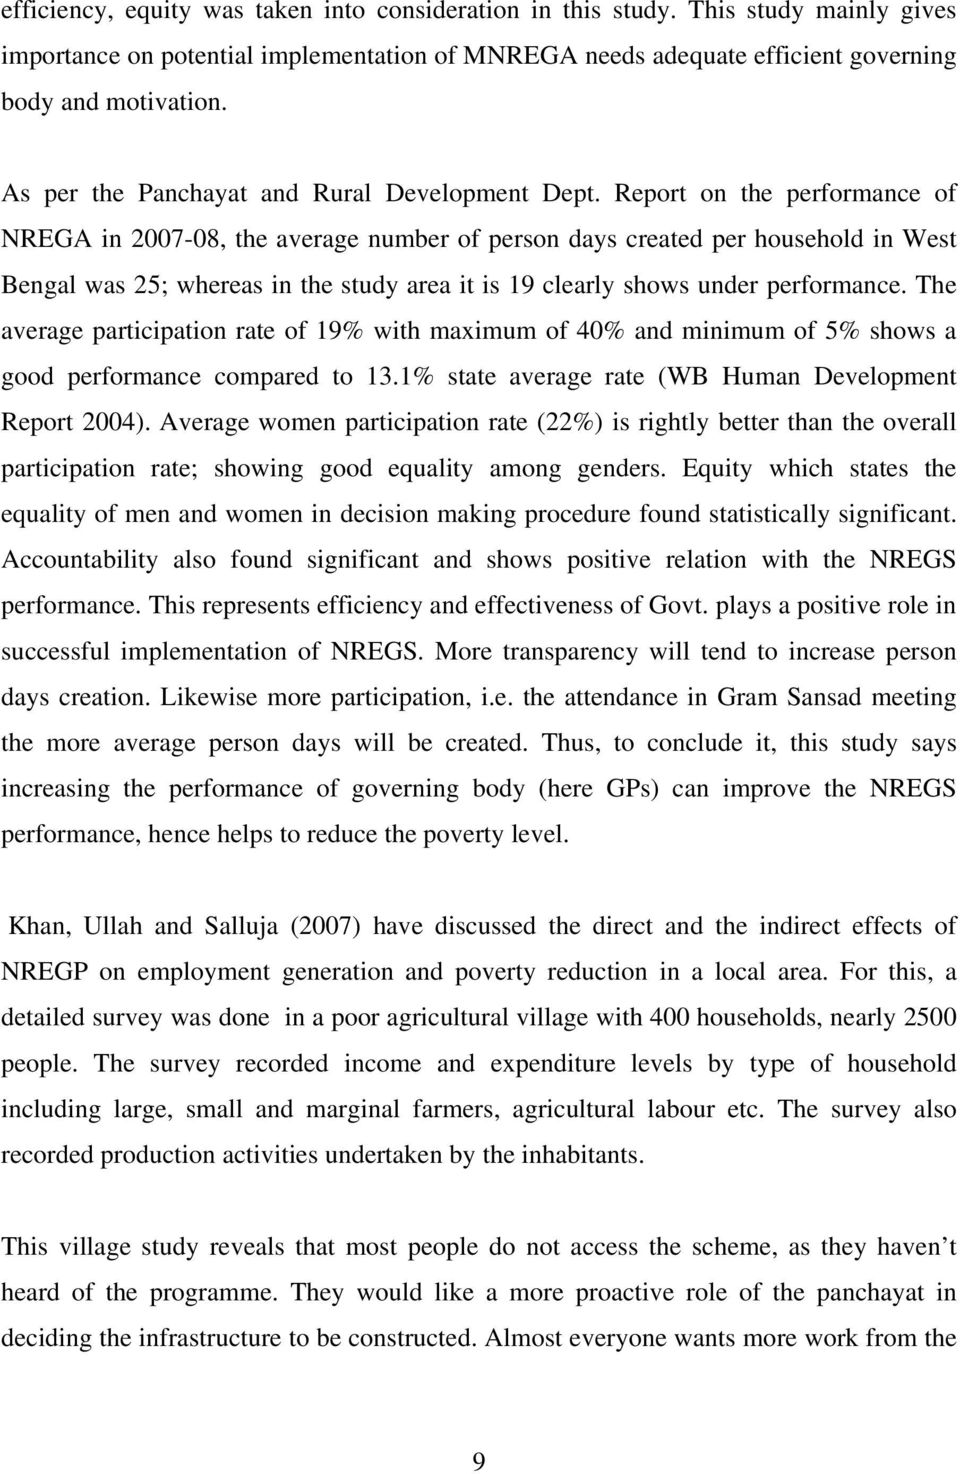 Report on the performance of NREGA in 2007-08, the average number of person days created per household in West Bengal was 25; whereas in the study area it is 19 clearly shows under performance.